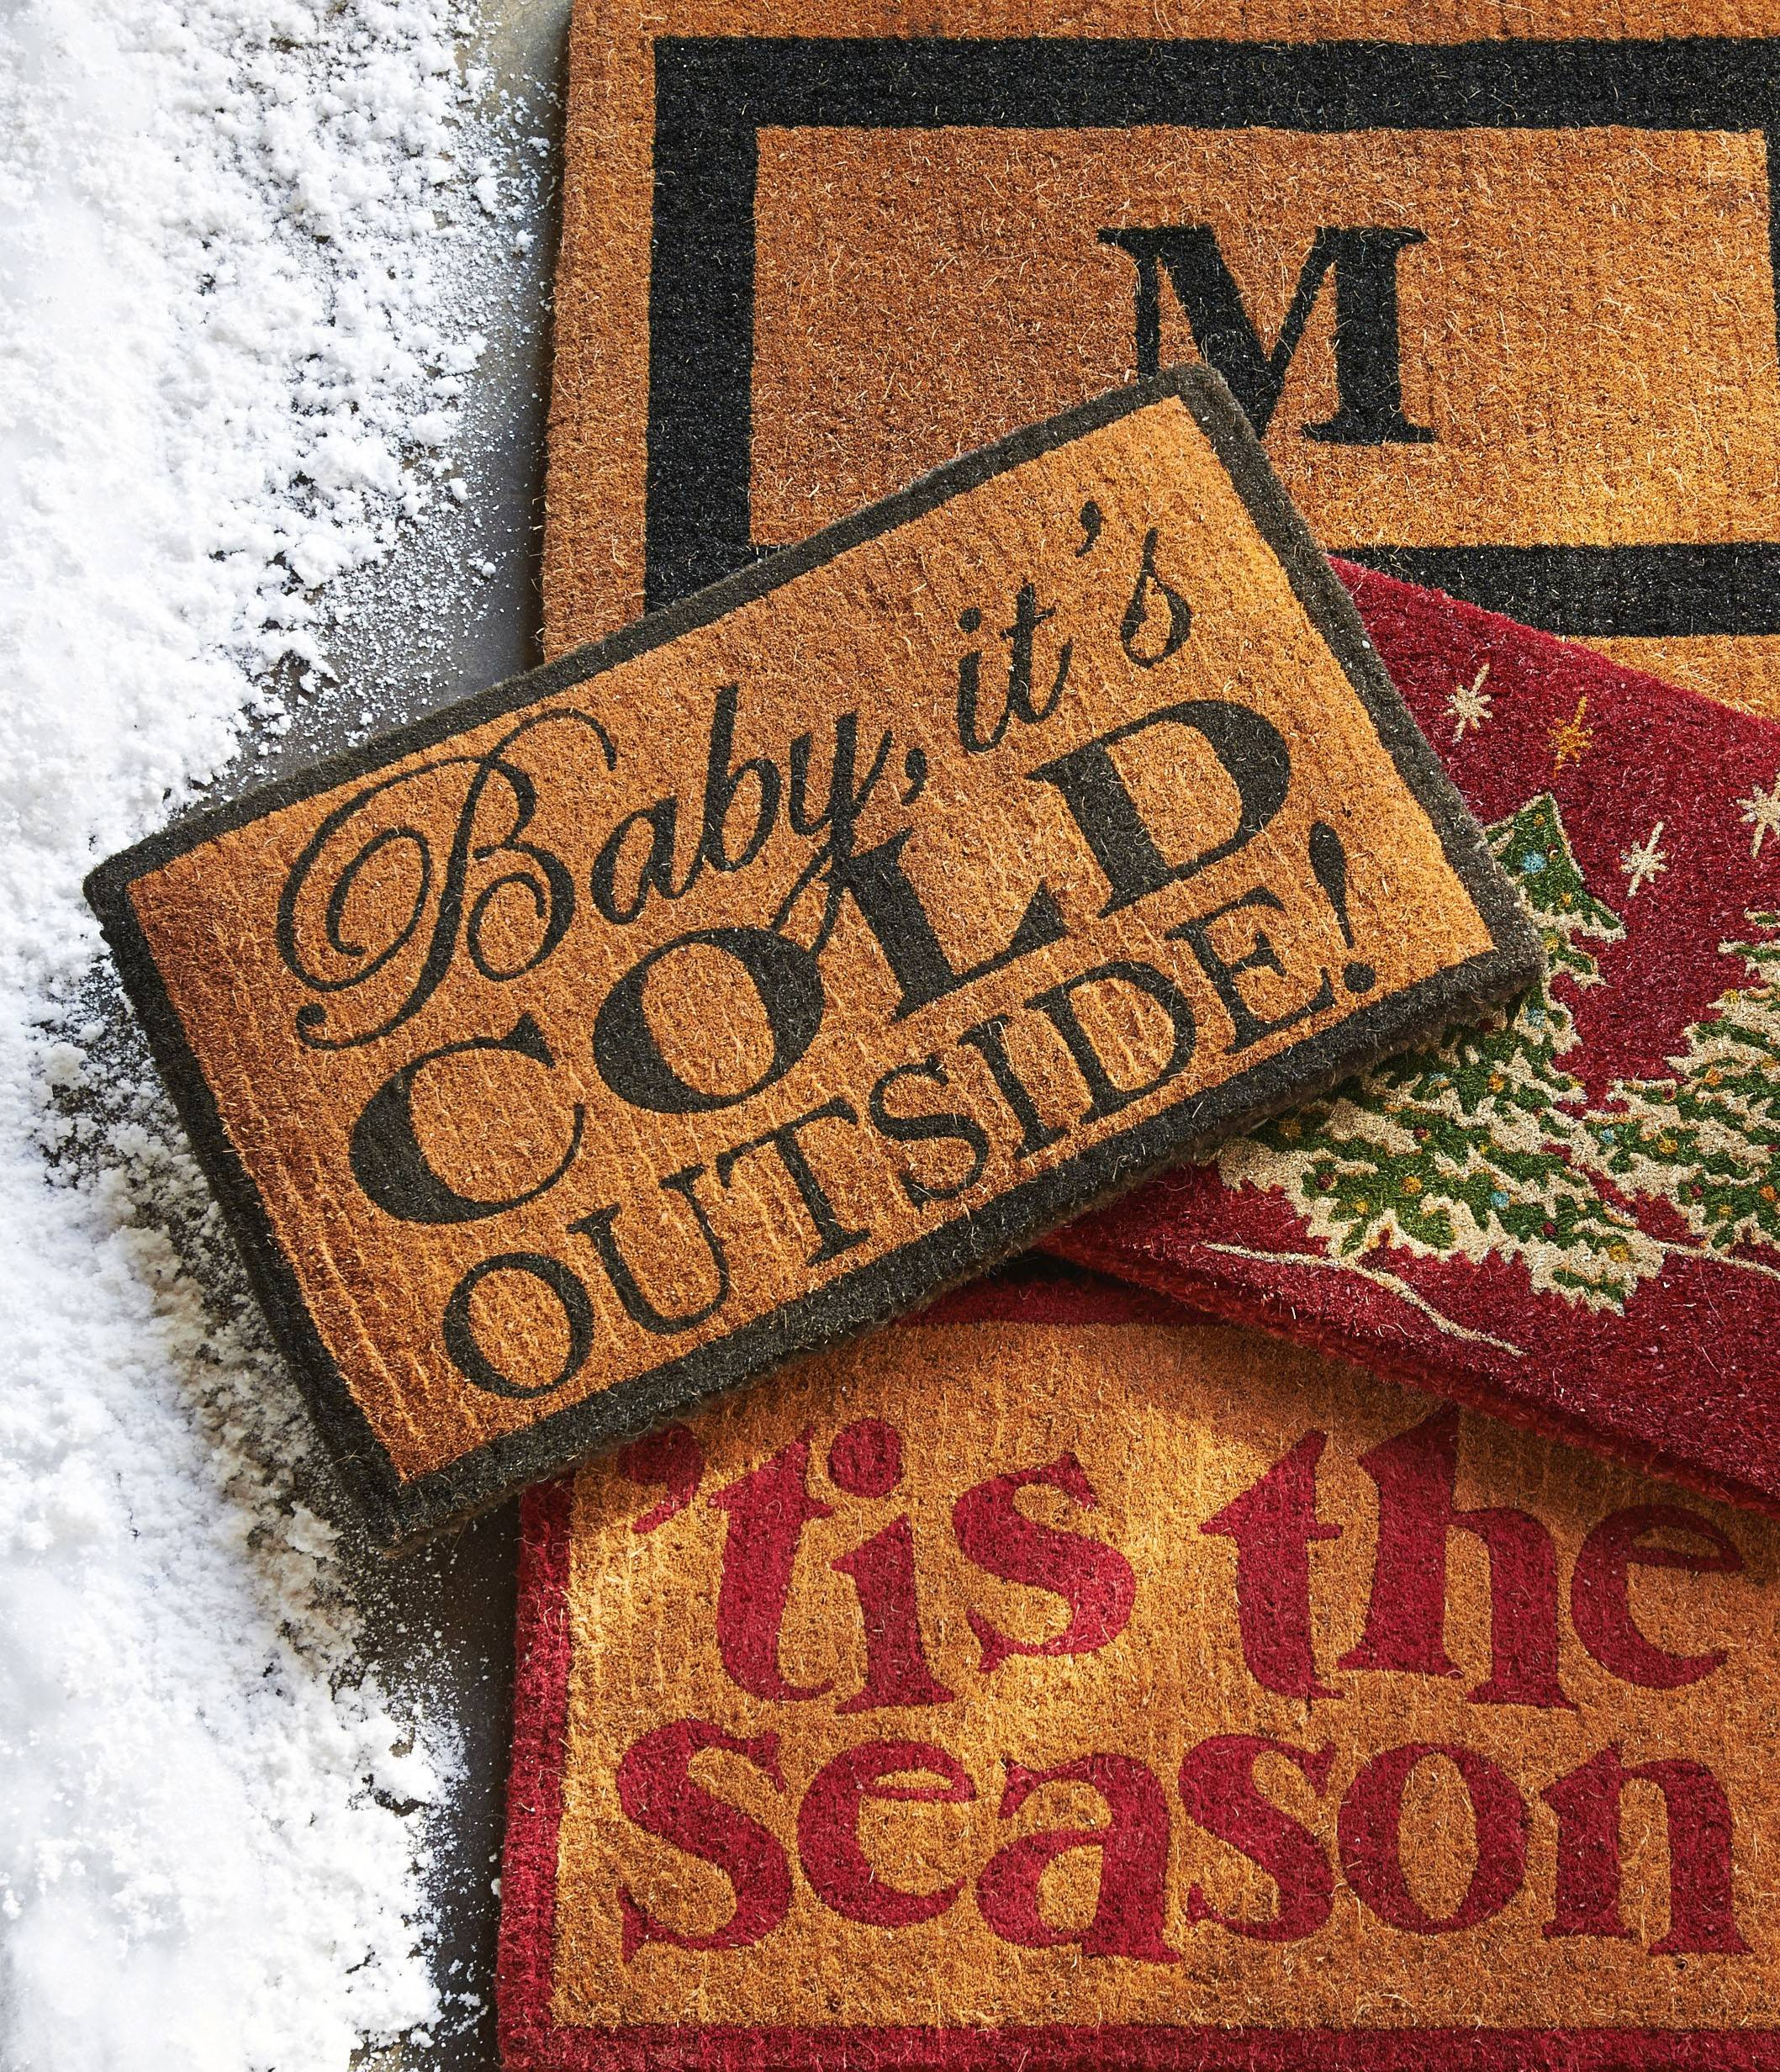 In this photo provided by Pottery Barn, vintage vibes run strong again this Christmas in these doormats with old style script to welcome guests.